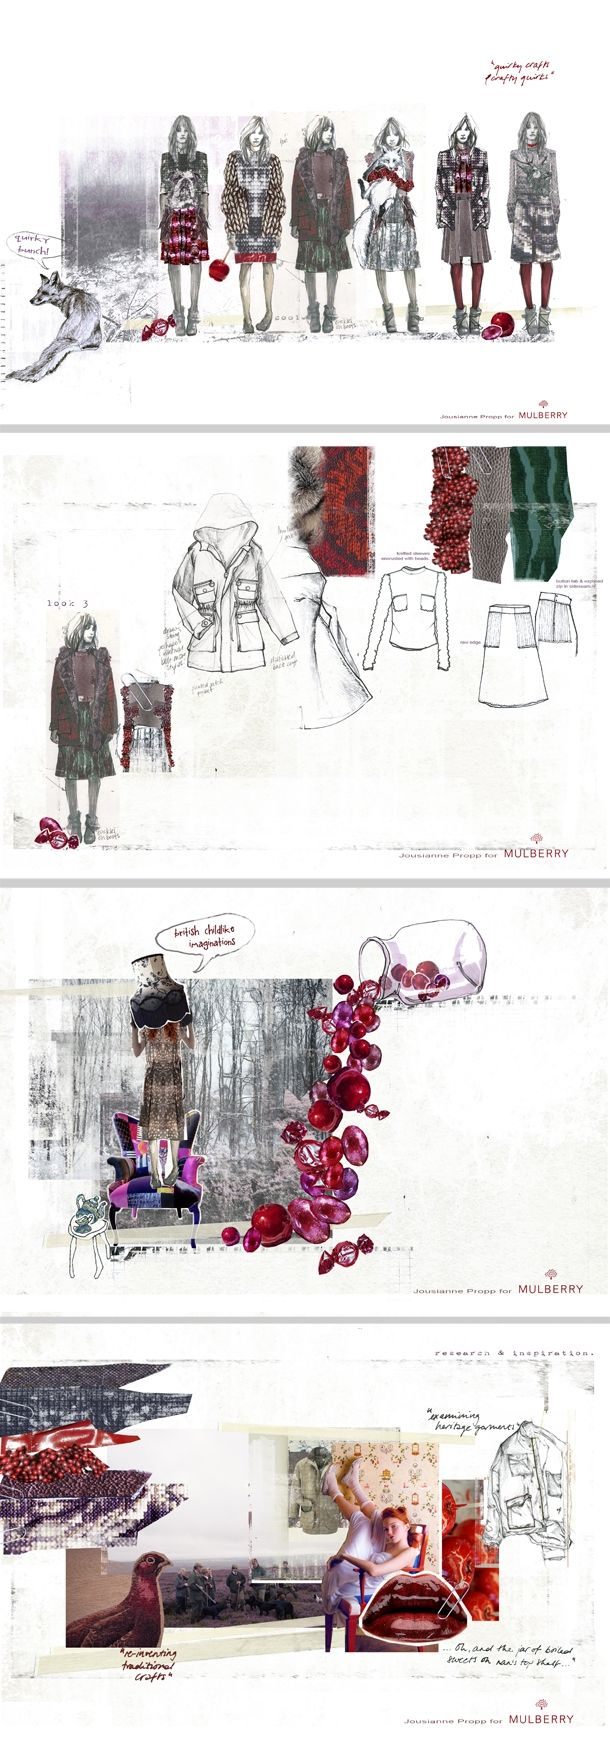 ILLUSTRATION || Arts Thread - Jousianne Propp - BFC Mulberry Design Competition 2012